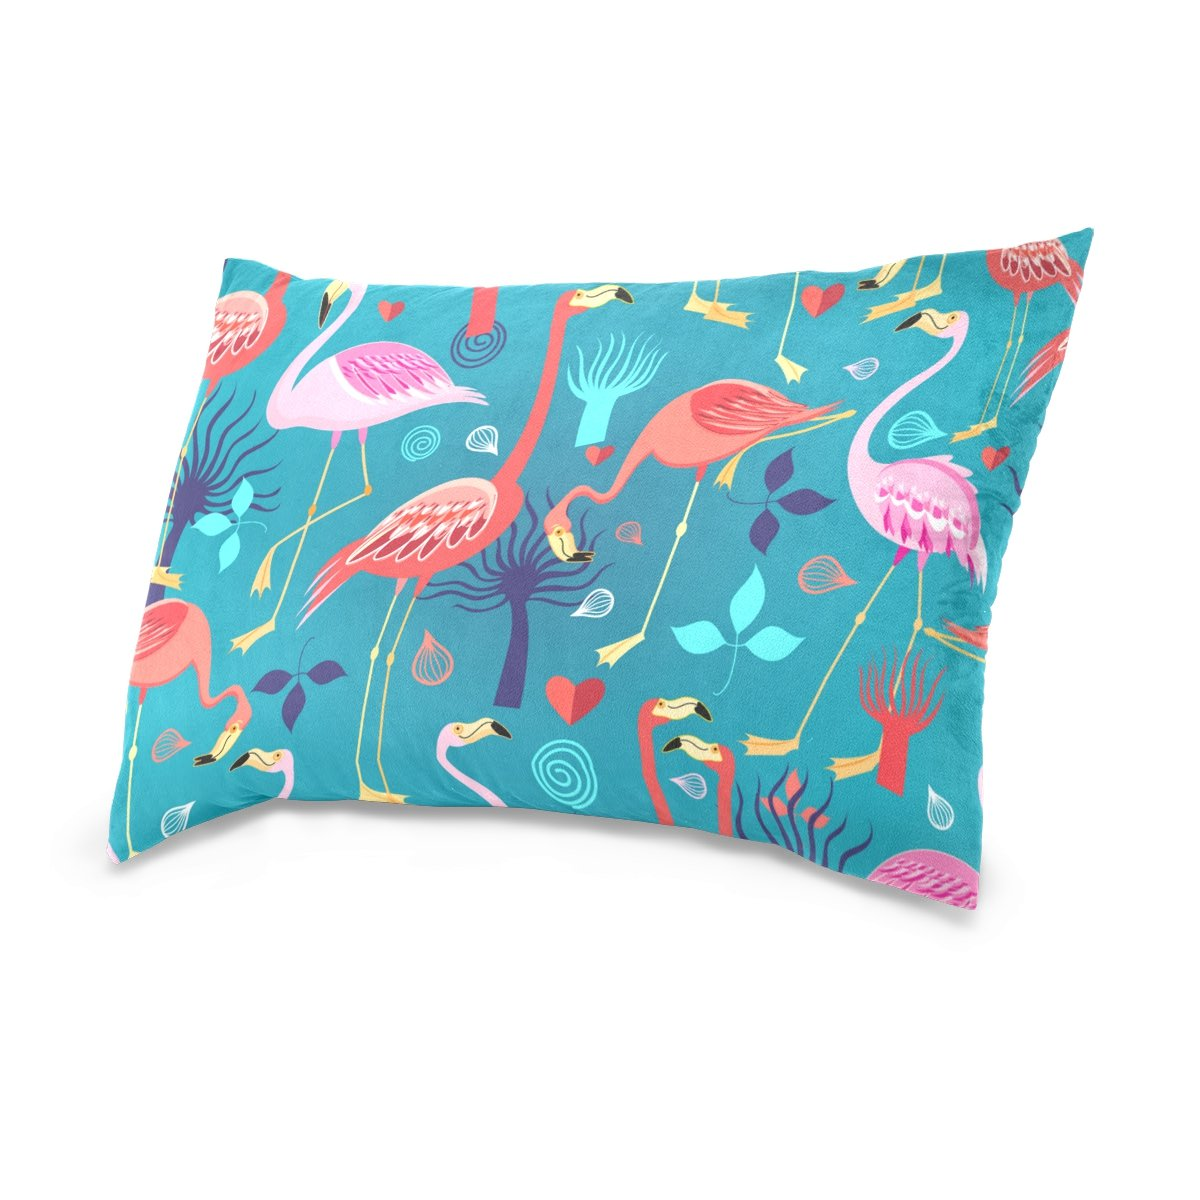 Cotton Velvet Pillowcases Flamingos Love Soft Pillow Protector with Hidden Zipper 20 x 26 Inch by My Little Nest (Image #2)